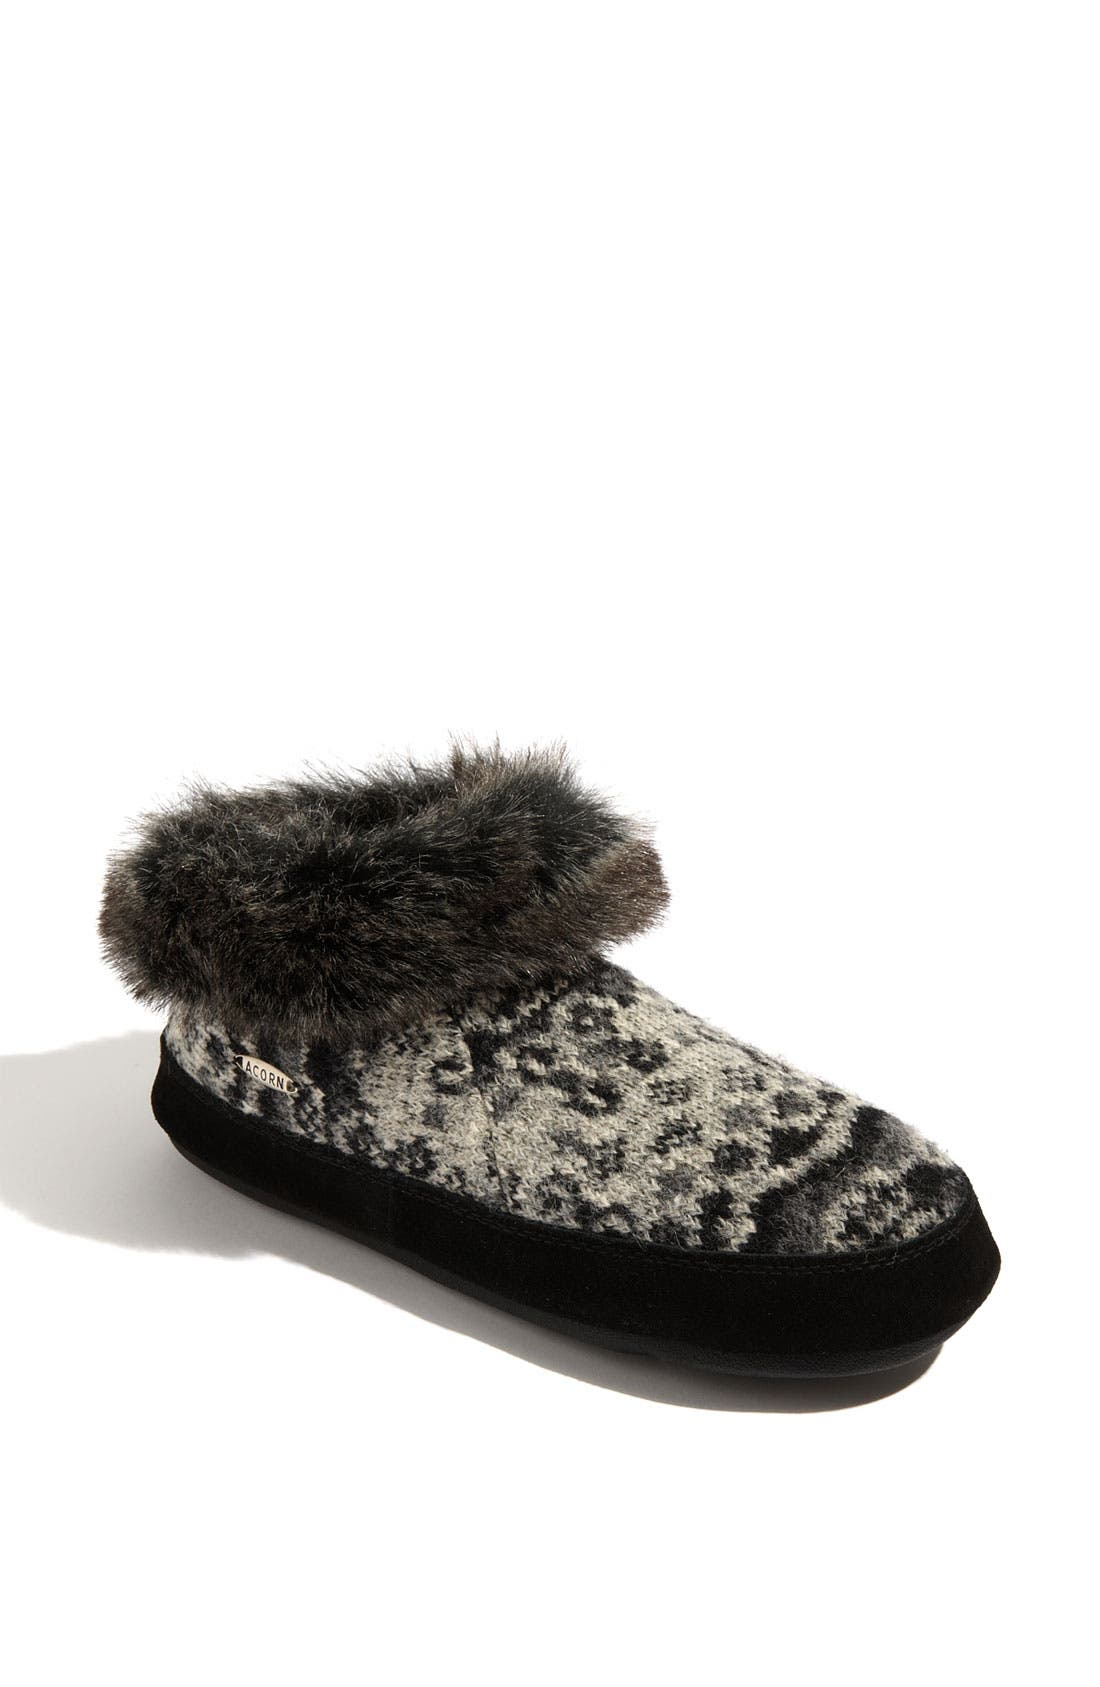 Alternate Image 1 Selected - Acorn 'Bromley' Bootie Slipper